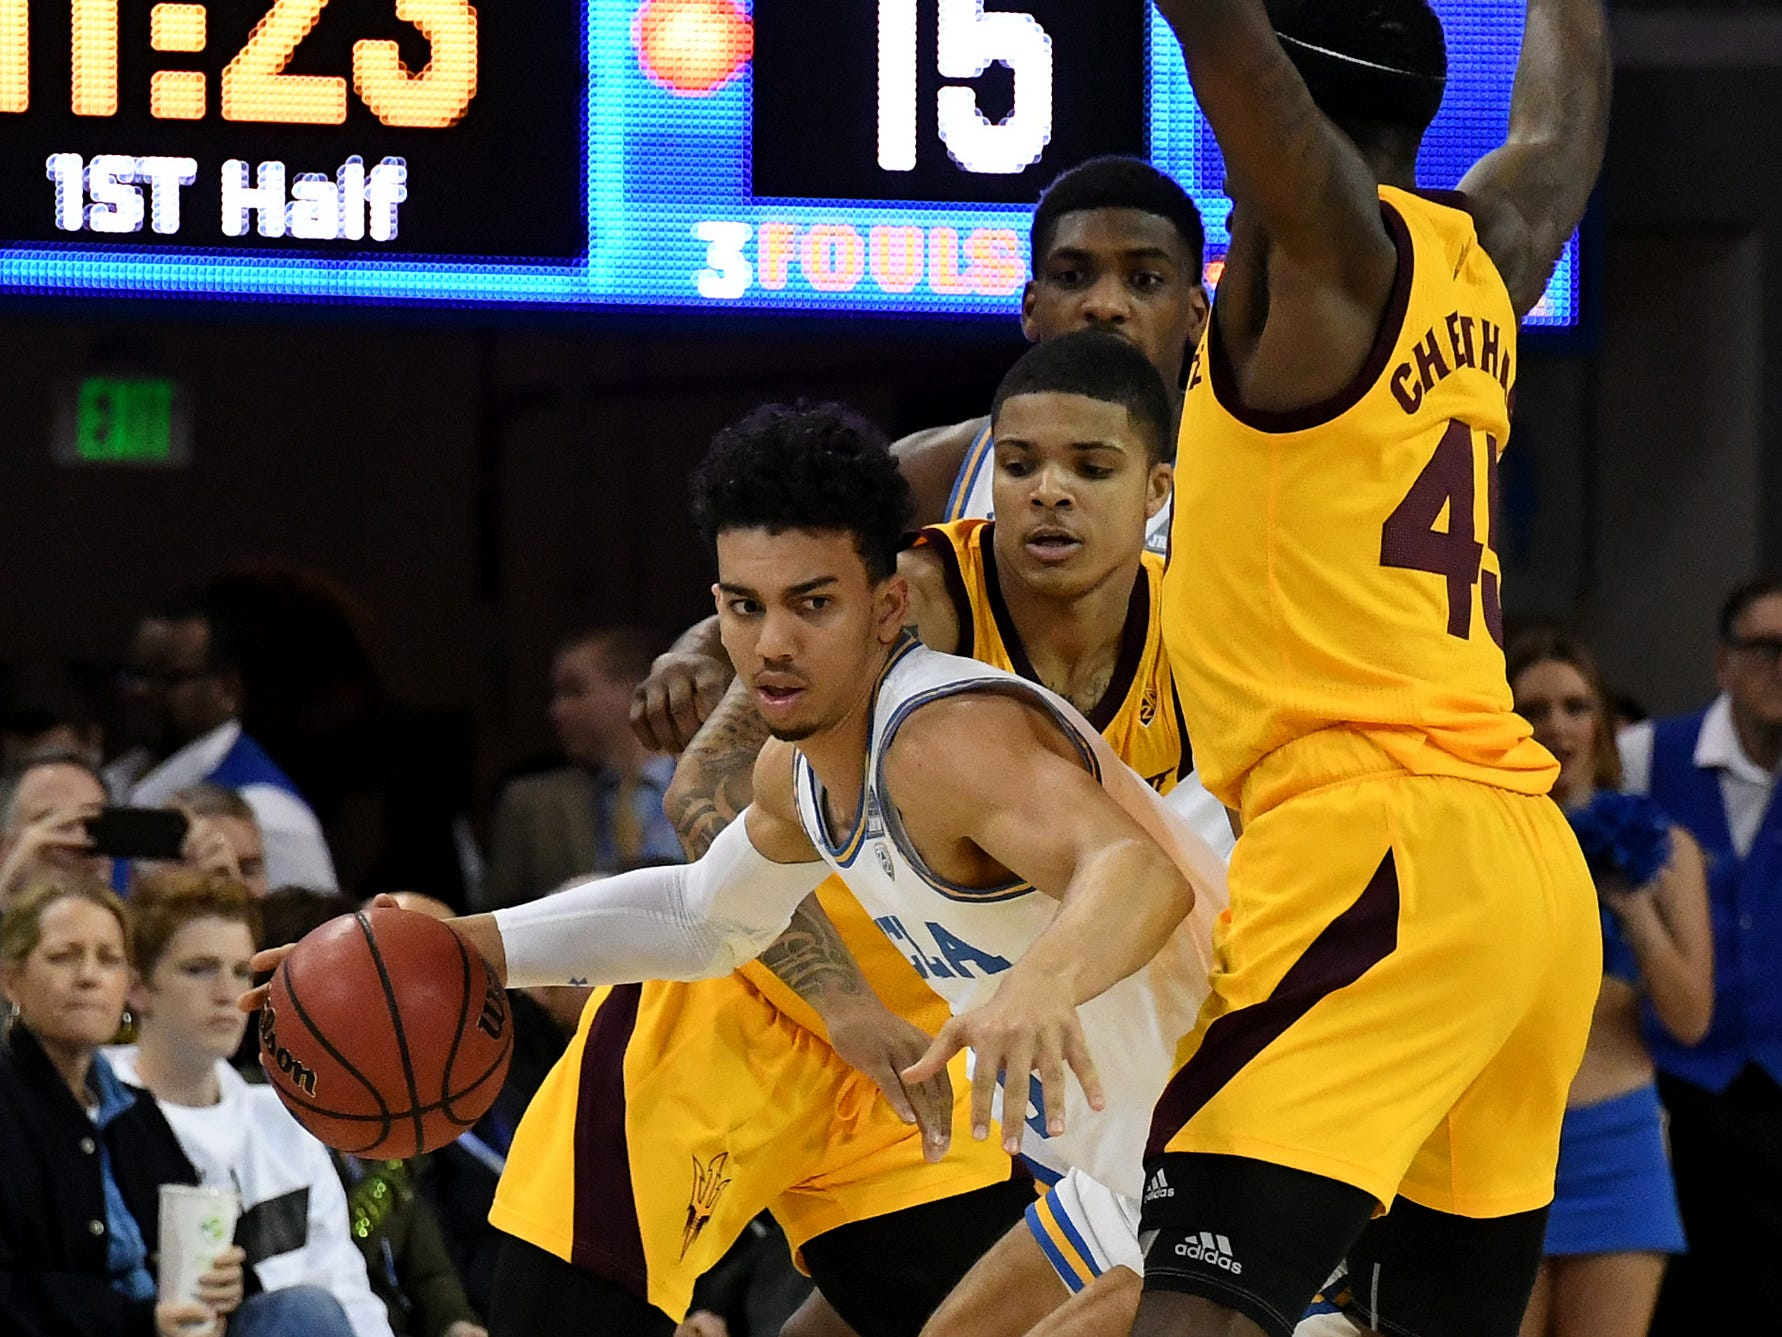 Jan 24, 2019; Los Angeles, CA, USA; UCLA Bruins guard Jules Bernard (left) tries to dribble around Arizona State Sun Devils guard Rob Edwards (middle) and forward Zylan Cheatham (45) during the first half at Pauley Pavilion. Mandatory Credit: Richard Mackson-USA TODAY Sports